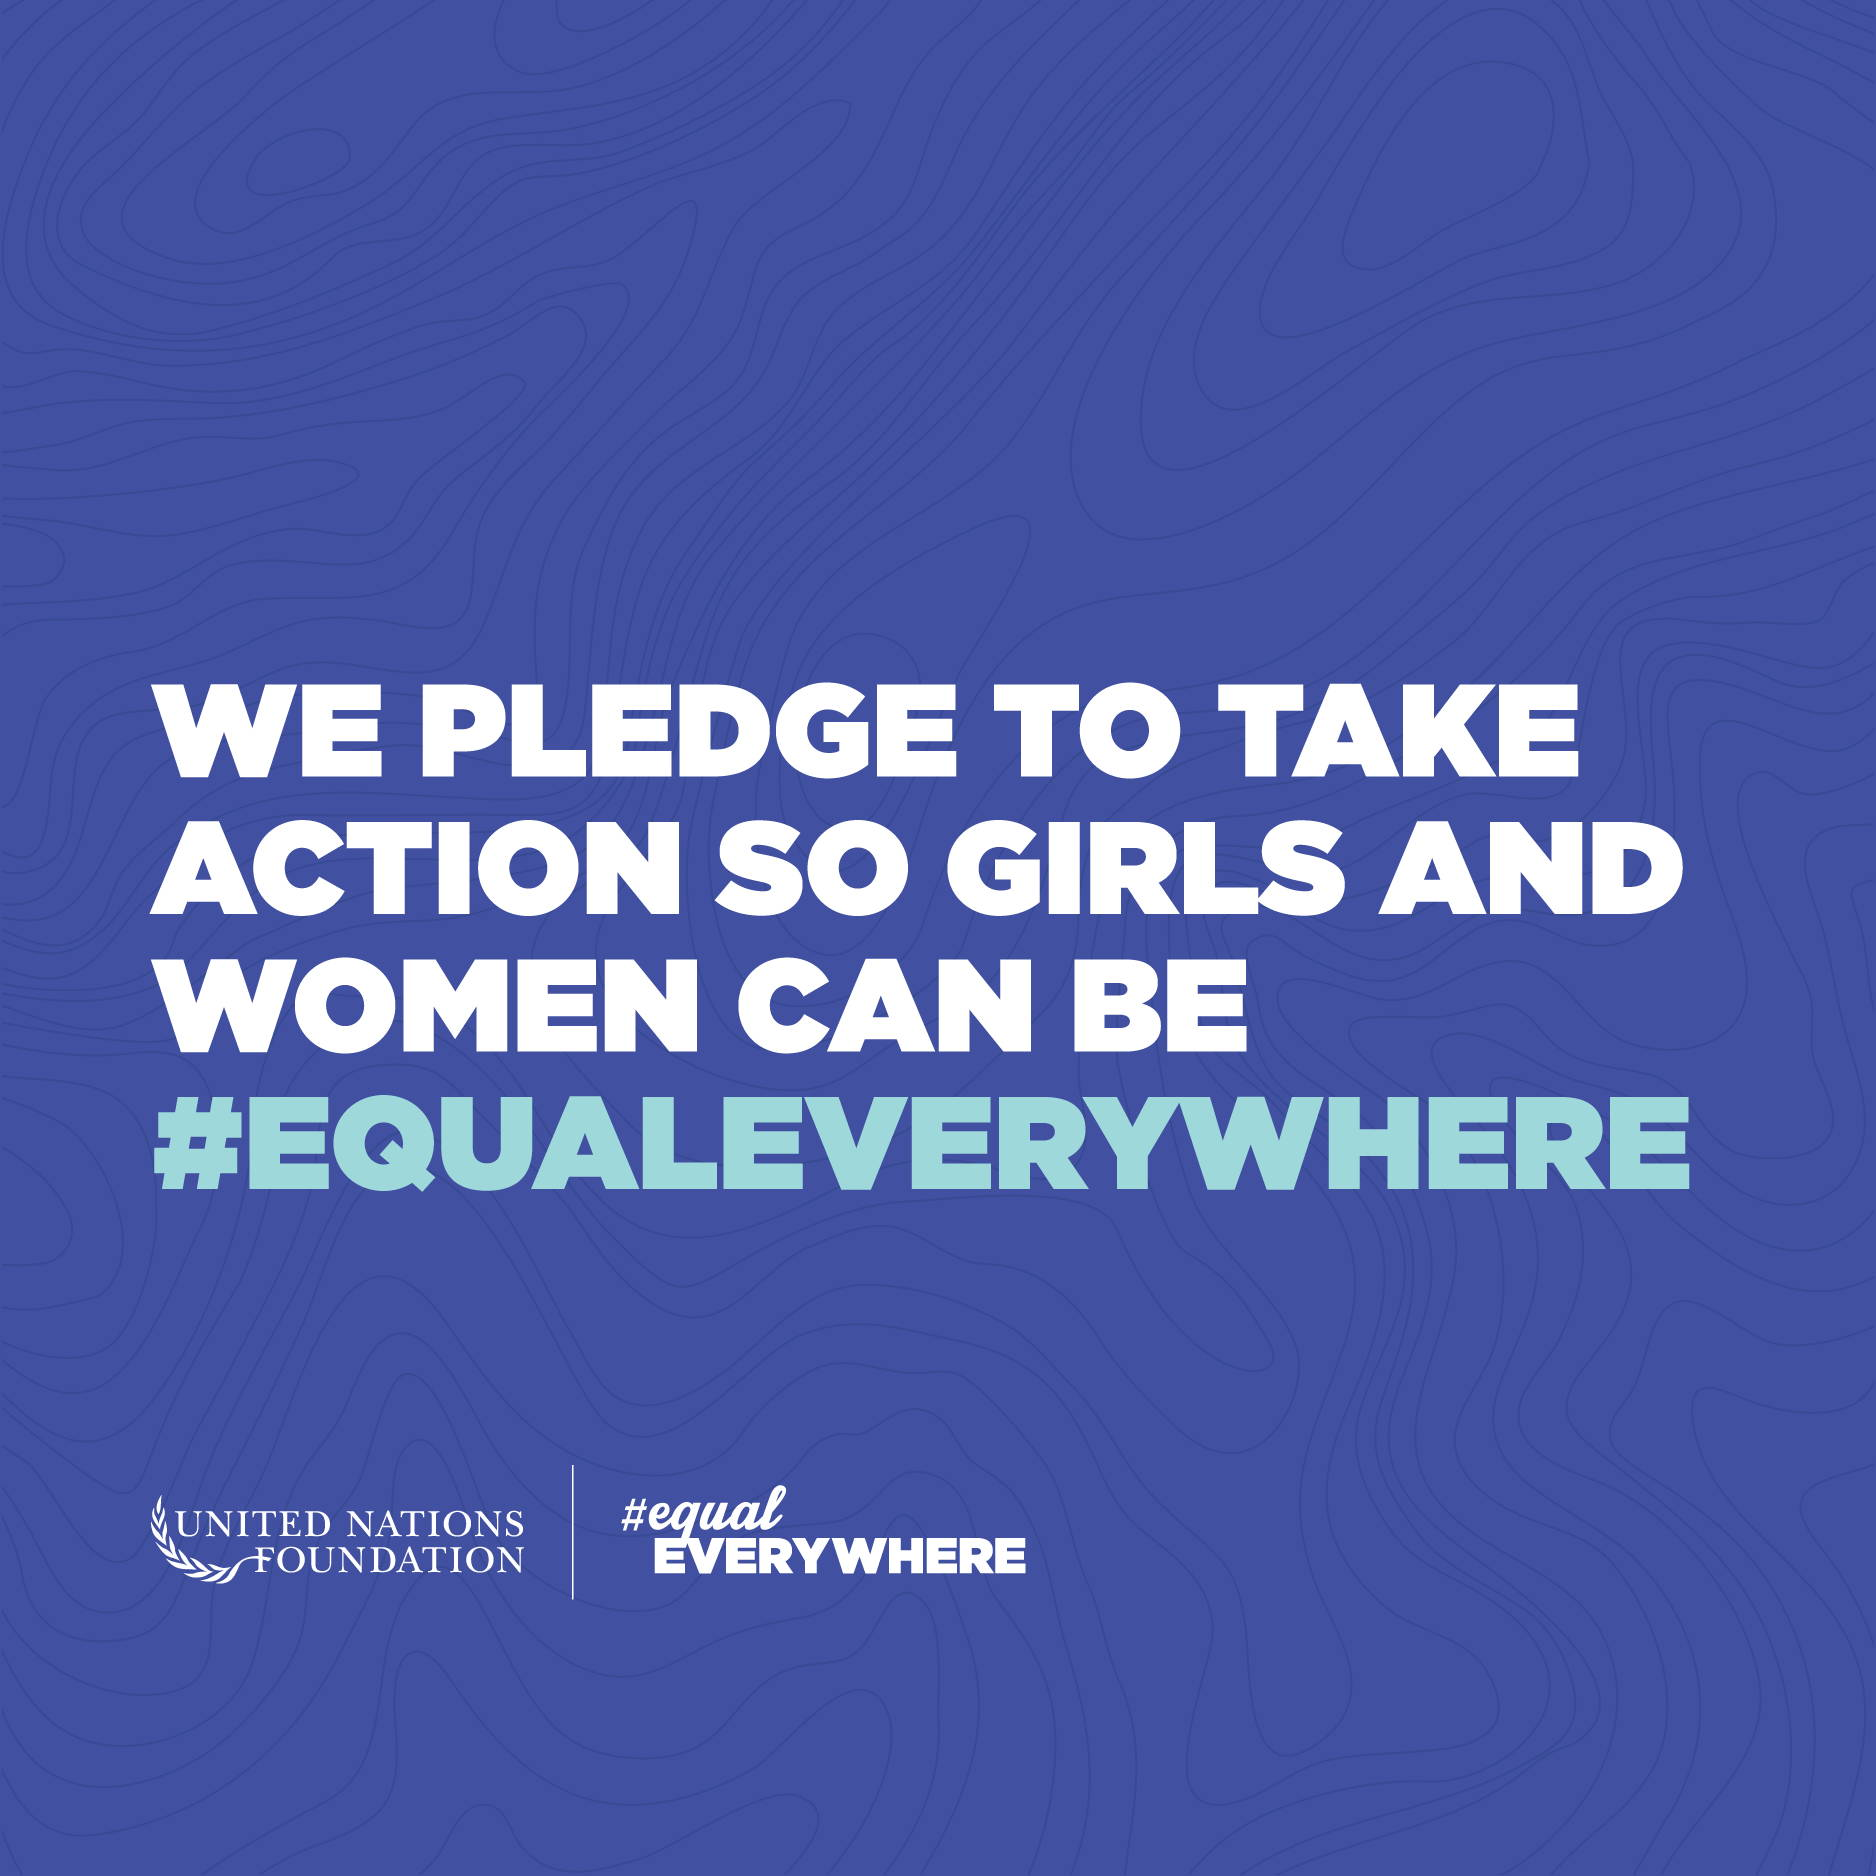 UN Foundation #EqualEverywhere sign